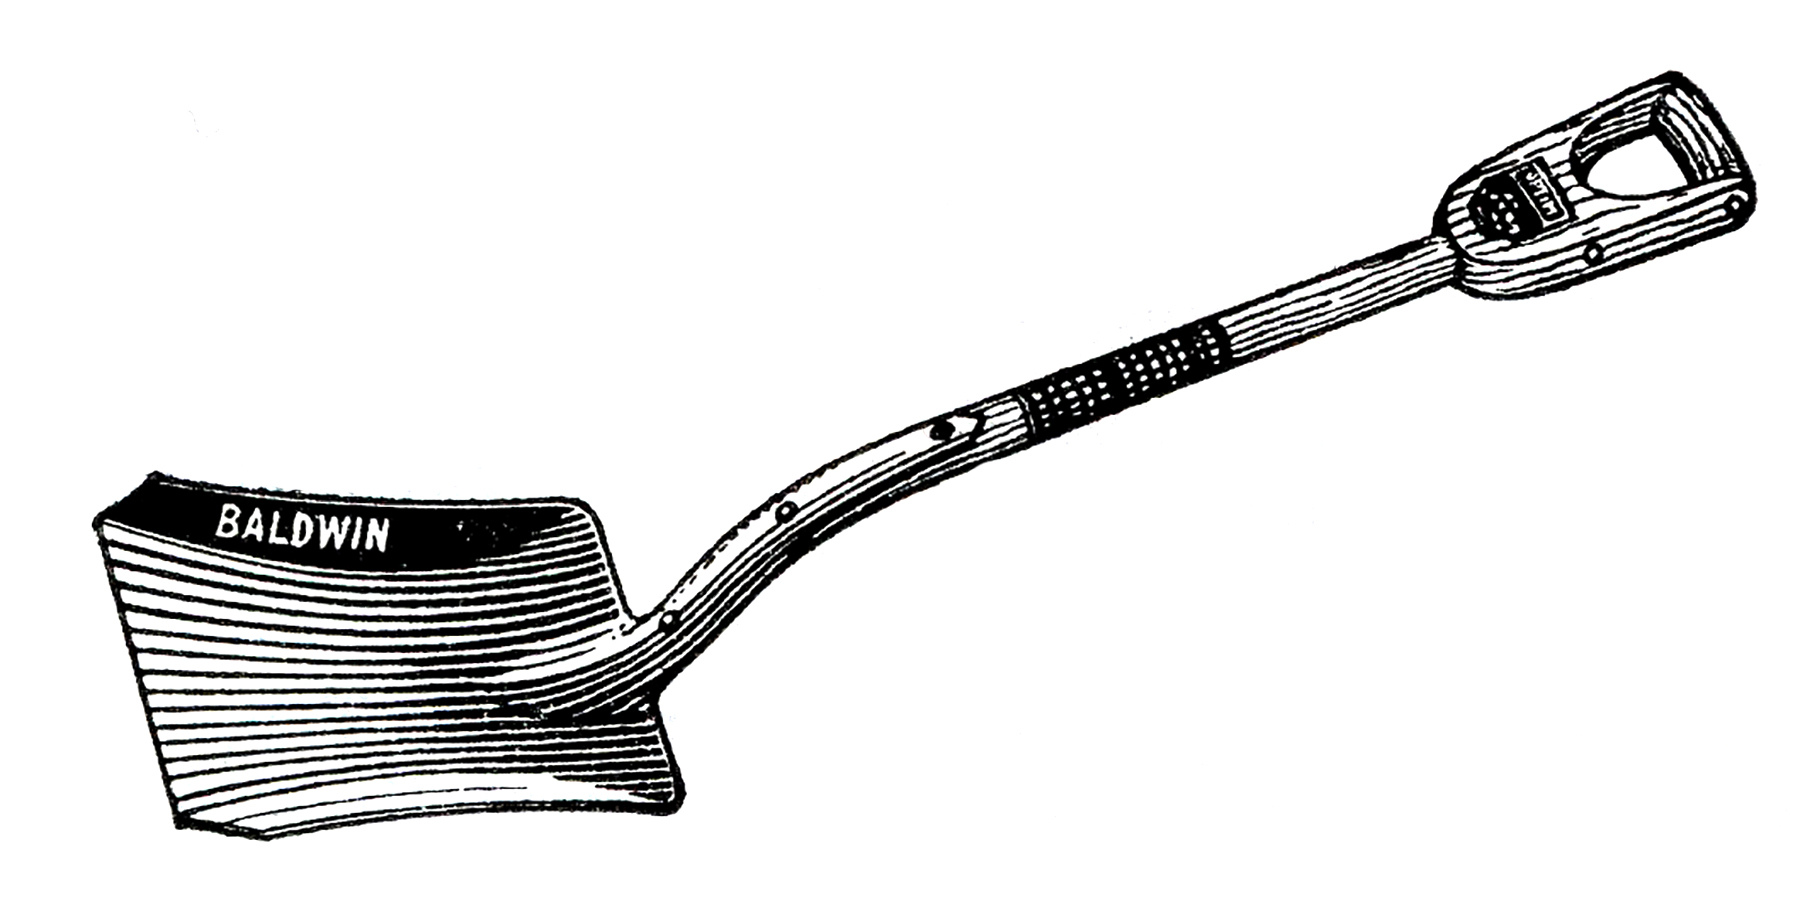 Free vintage shovel clip art images the graphics fairy 2